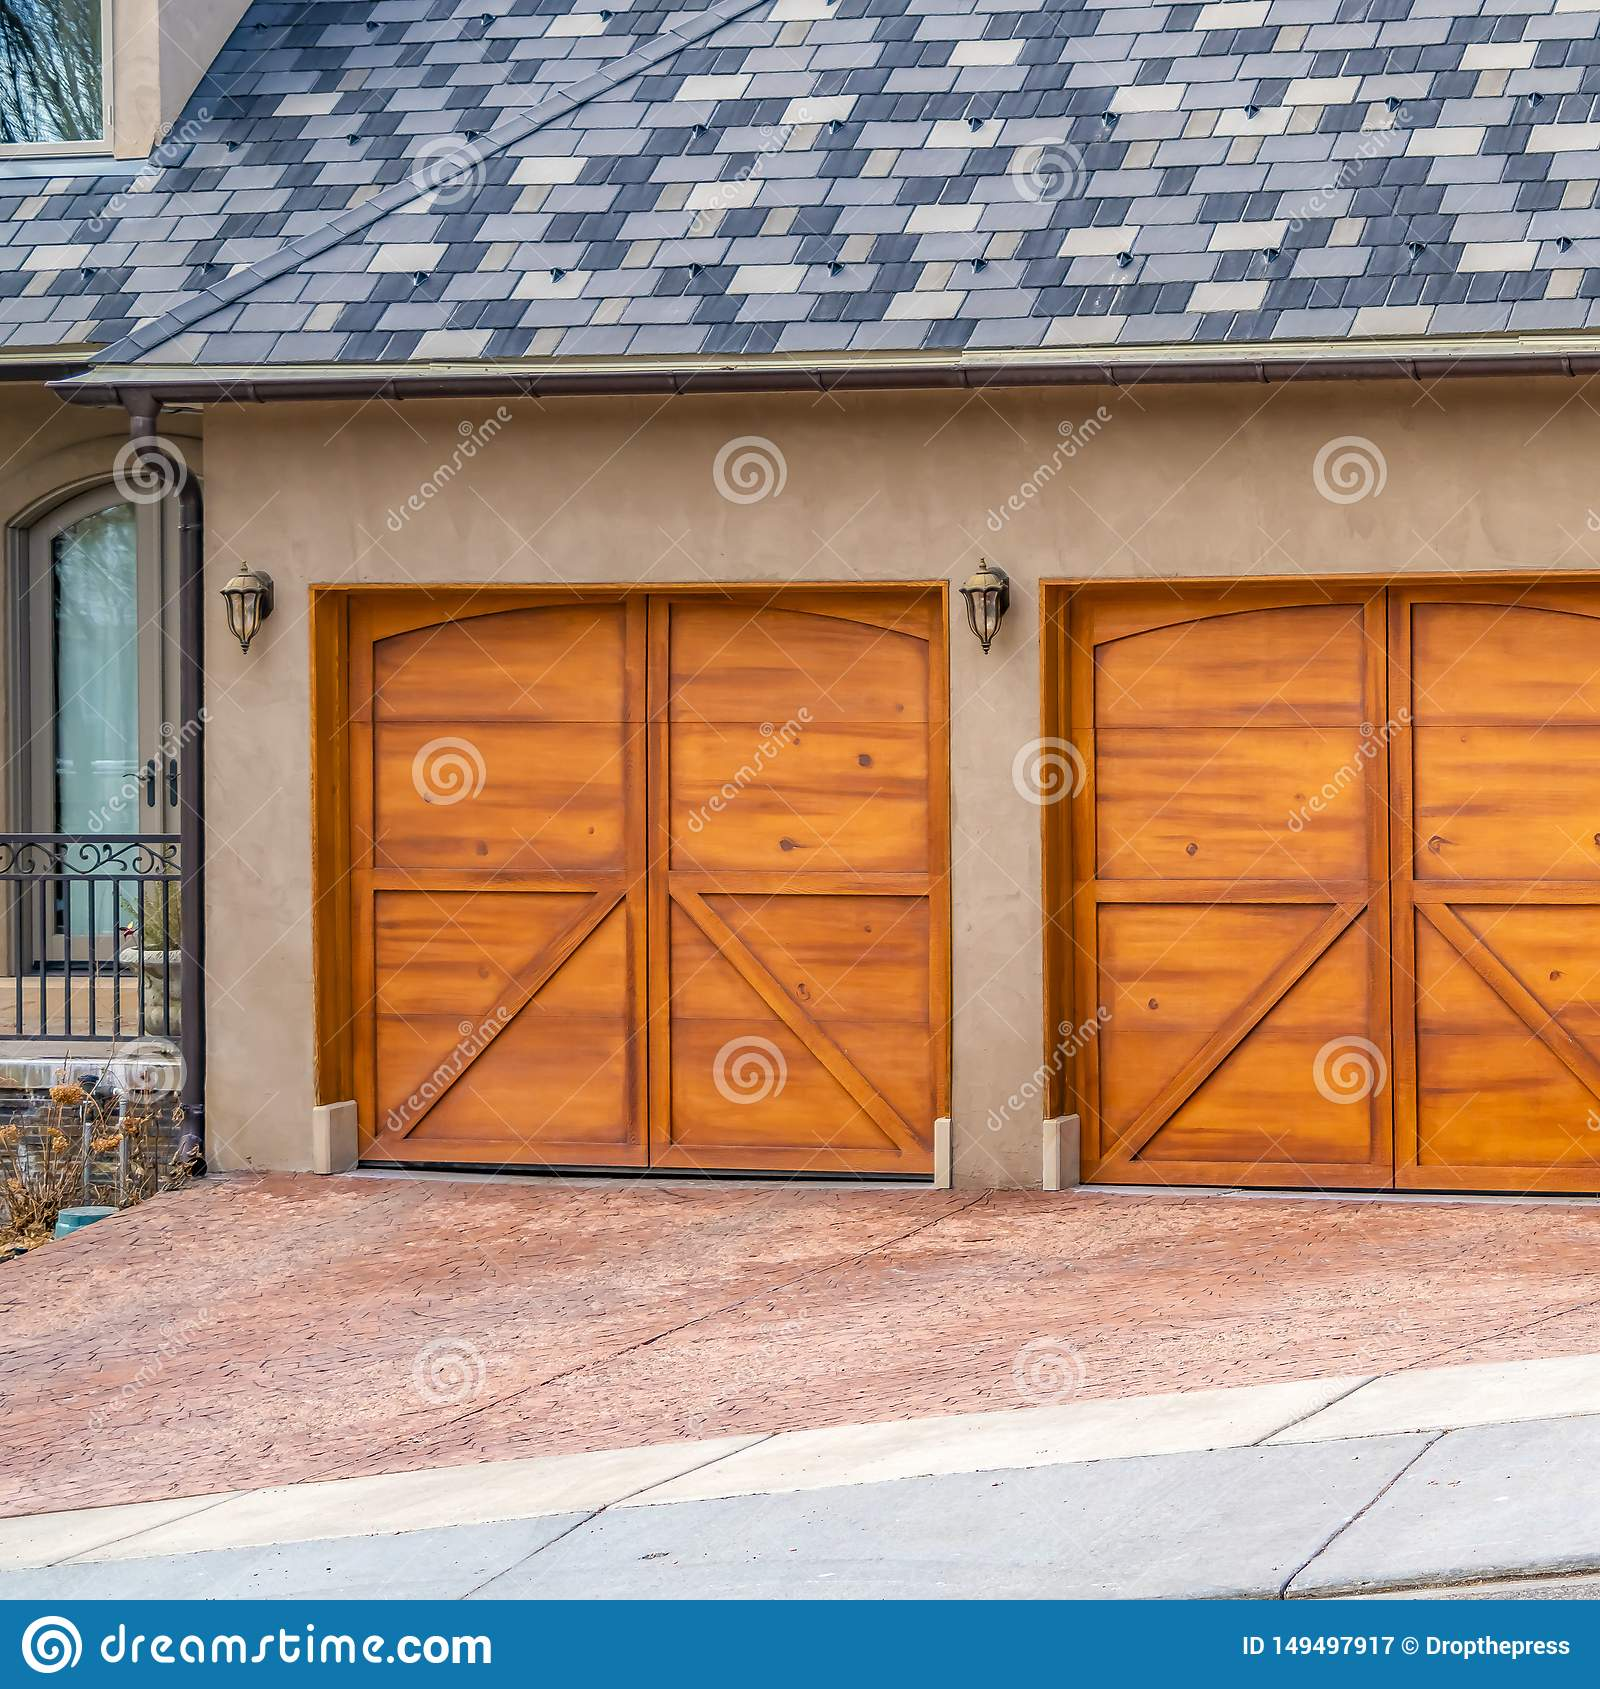 Square House Exterior With Gray And White Roof And Stylish Wooden Garage Doors Stock Image Image Of Home Wall 149497917